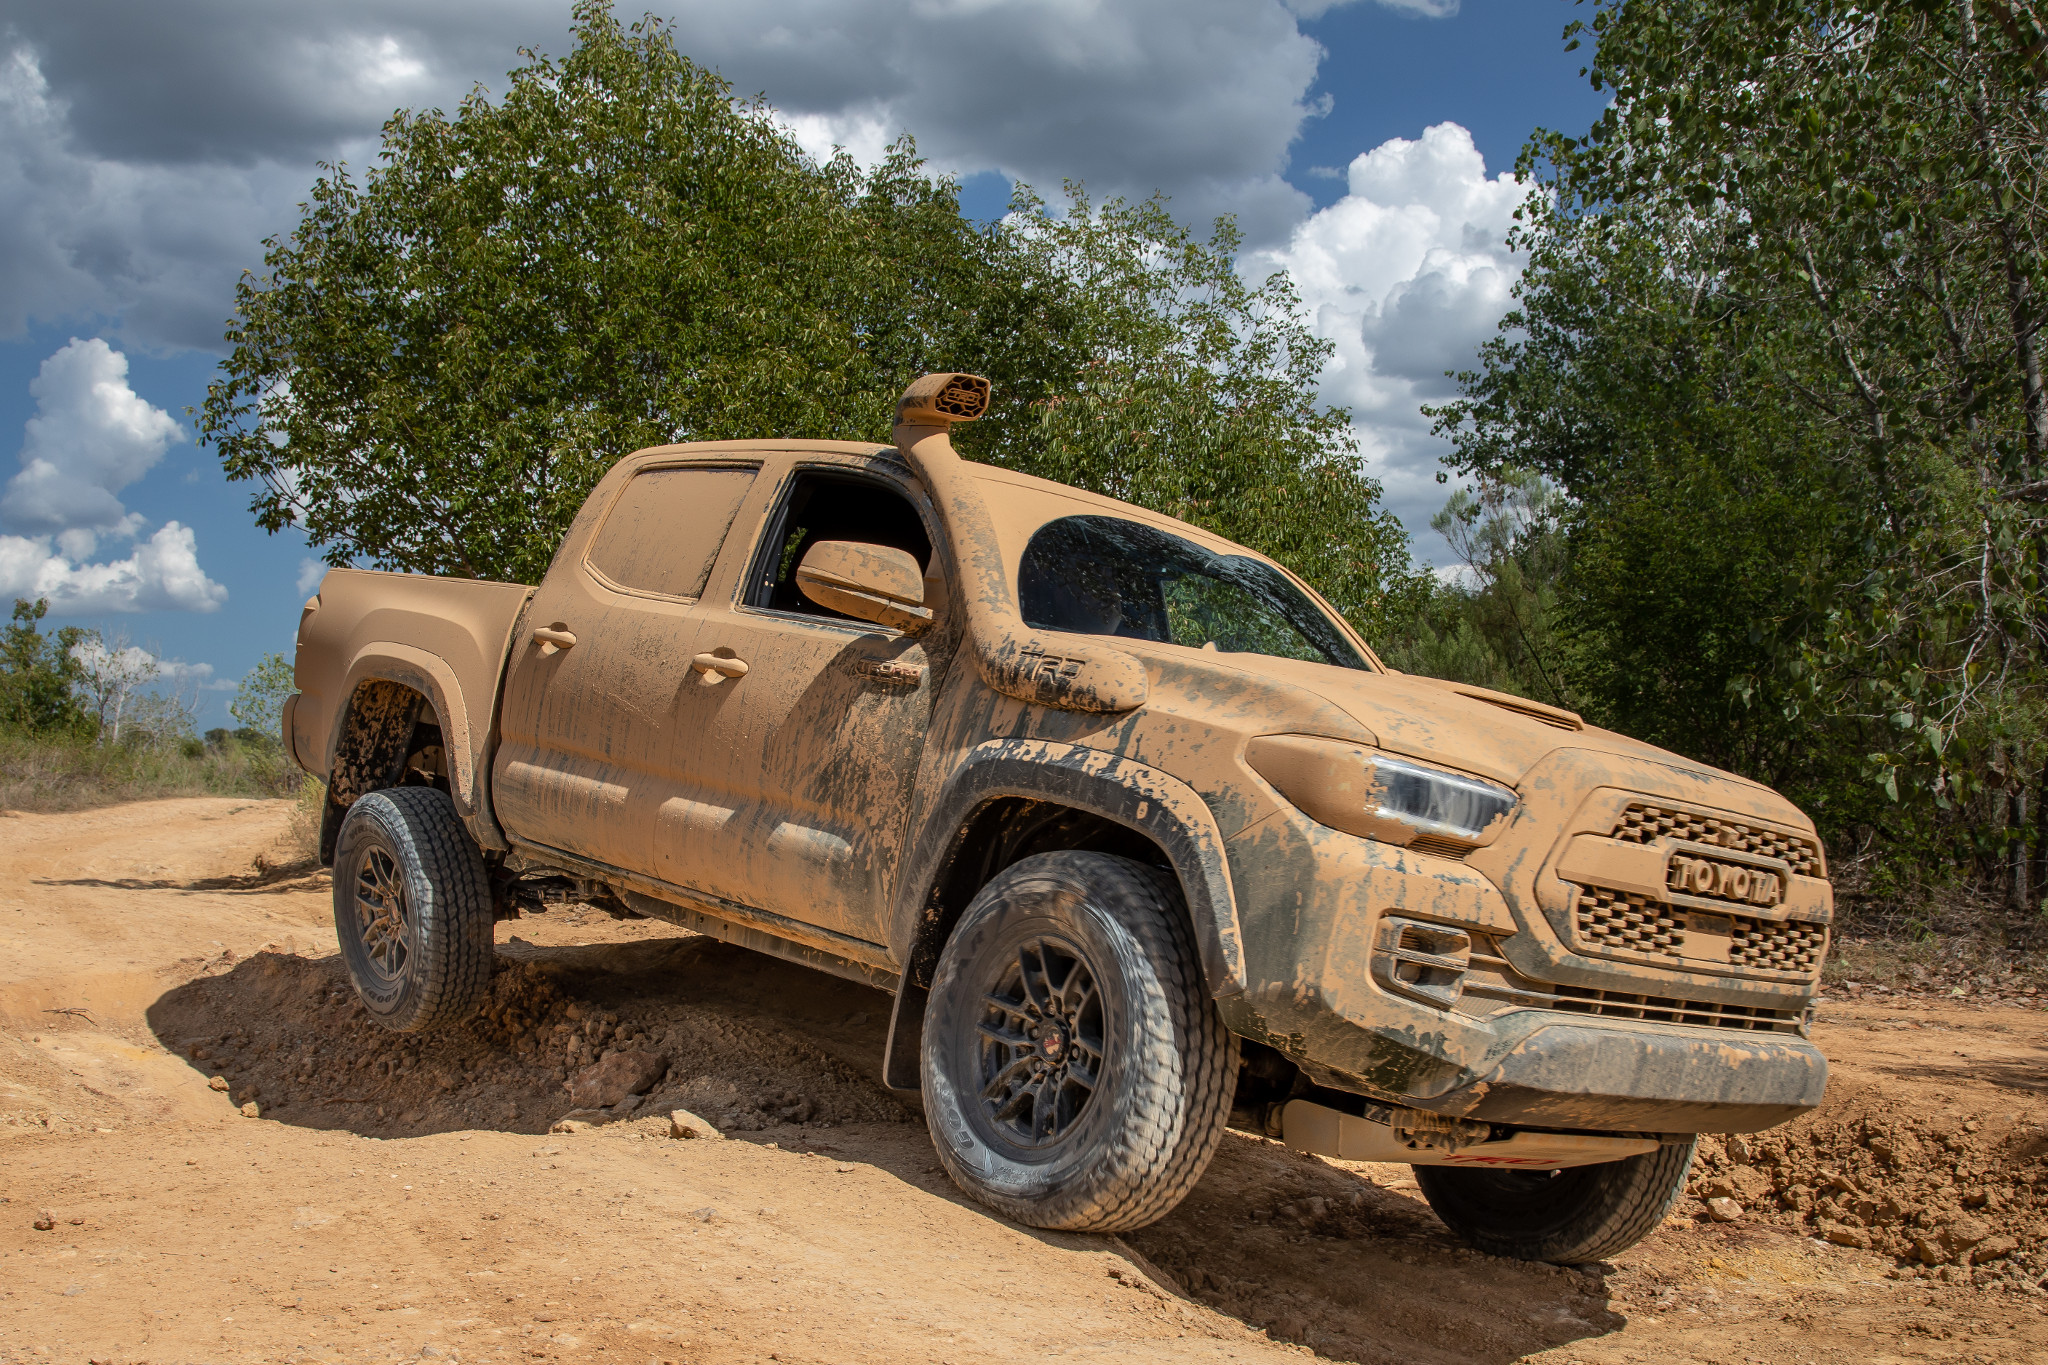 All the Pickup Truck News: 2020 Toyota Tacoma Is Tops in Crash Tests, Ford Super Duties at SEMA and More